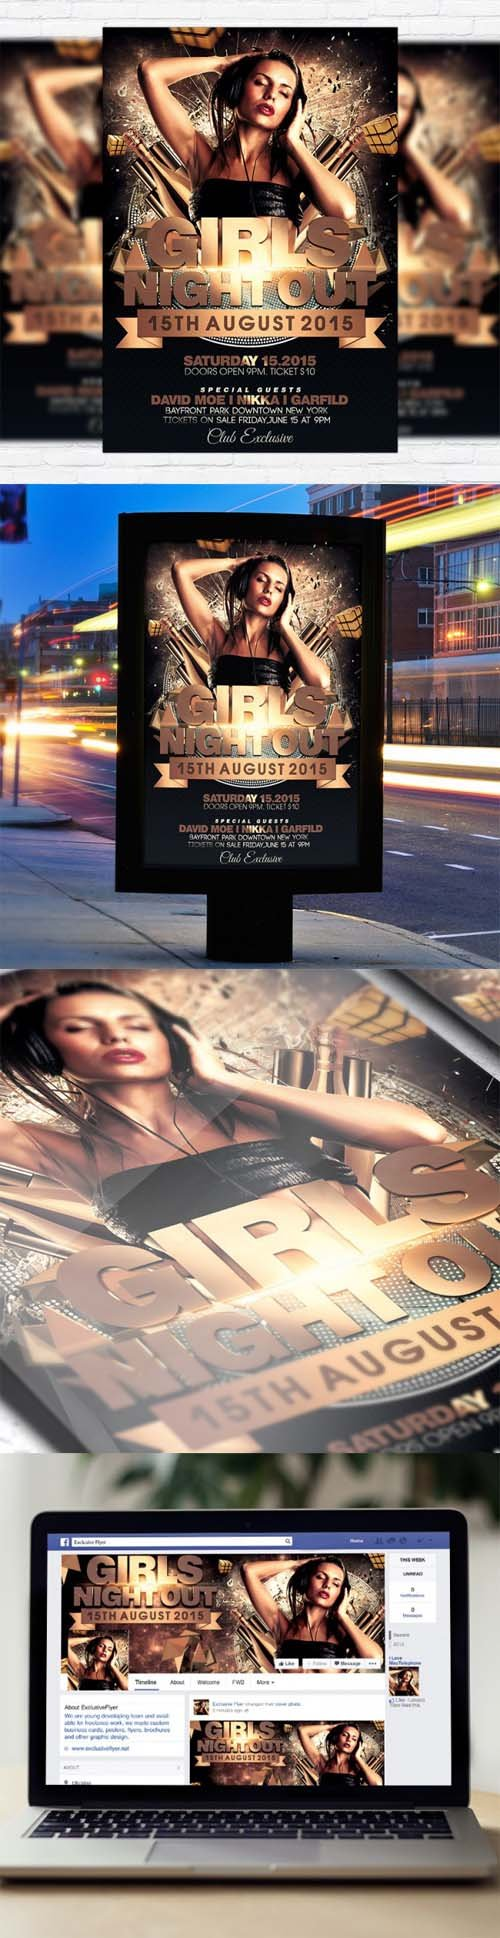 Flyer Template - Girls Night Out + Facebook Cover